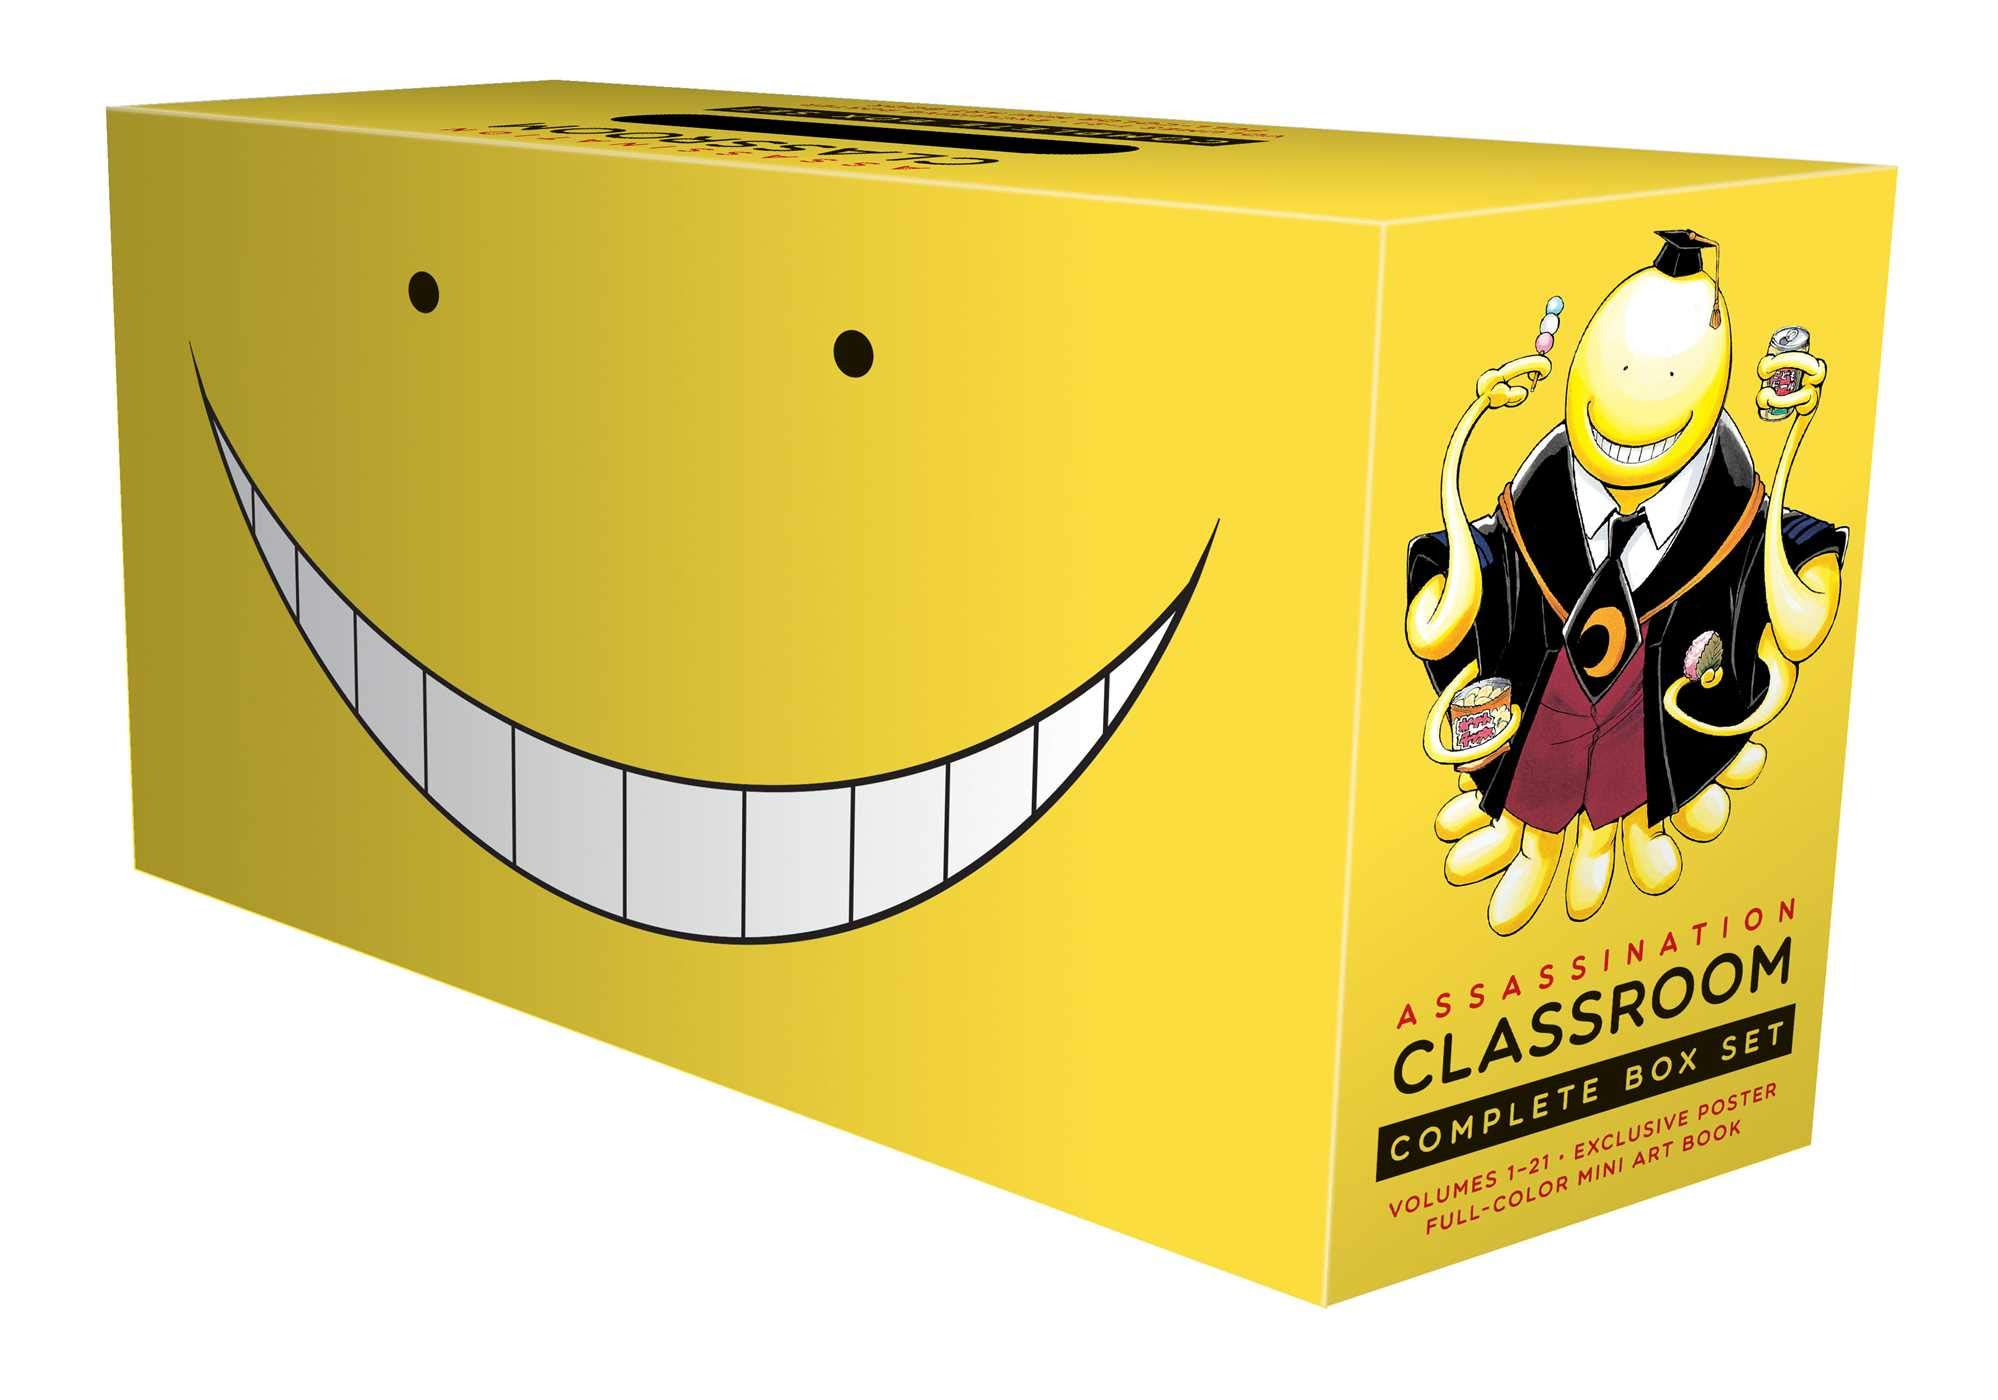 Assassination Classroom Complete Box Set: Includes volumes 1-21 with premium by VIZ Media LLC